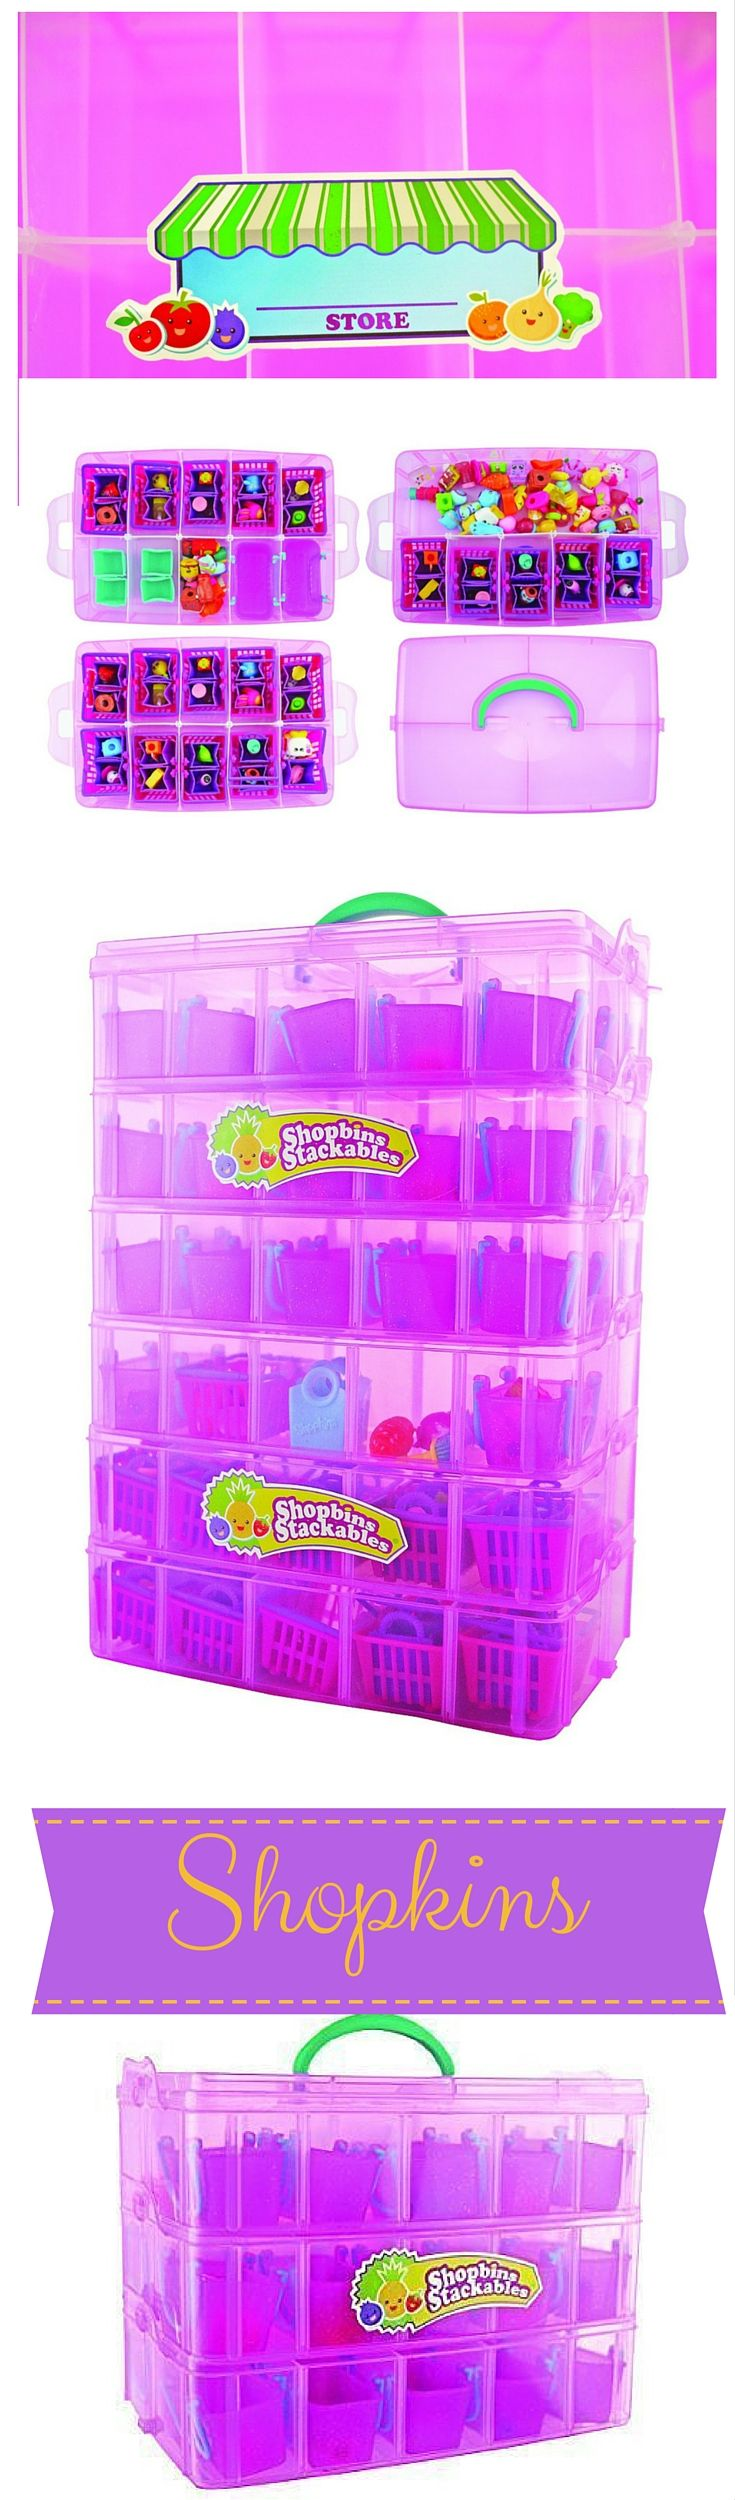 Shopbins Stackables Container and Carrying Case - Compatible with All Seasons of Shopkins https://www.amazon.com/Shopbins-Stackables-Container-Carrying-Case/dp/B01A6E1JW2/ref=as_li_ss_tl?s=toys-and-games&ie=UTF8&qid=1467782841&sr=1-5&keywords=Shopkins+Case&linkCode=ll1&tag=herbcoloclea-20&linkId=94db59413e697f217c32a5a95587183e